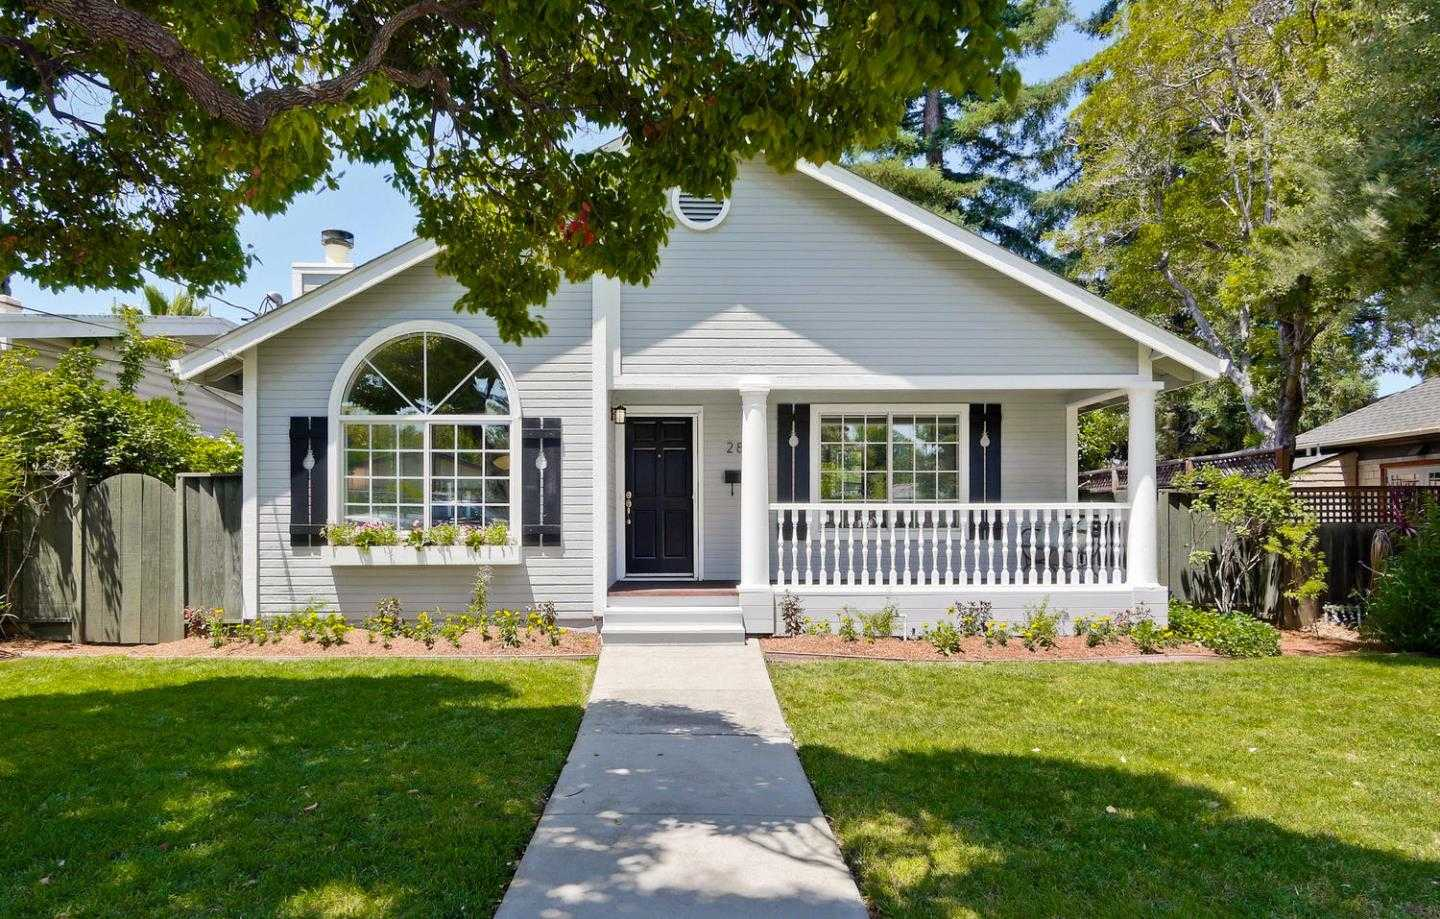 $1,898,000 - 3Br/2Ba -  for Sale in Mountain View